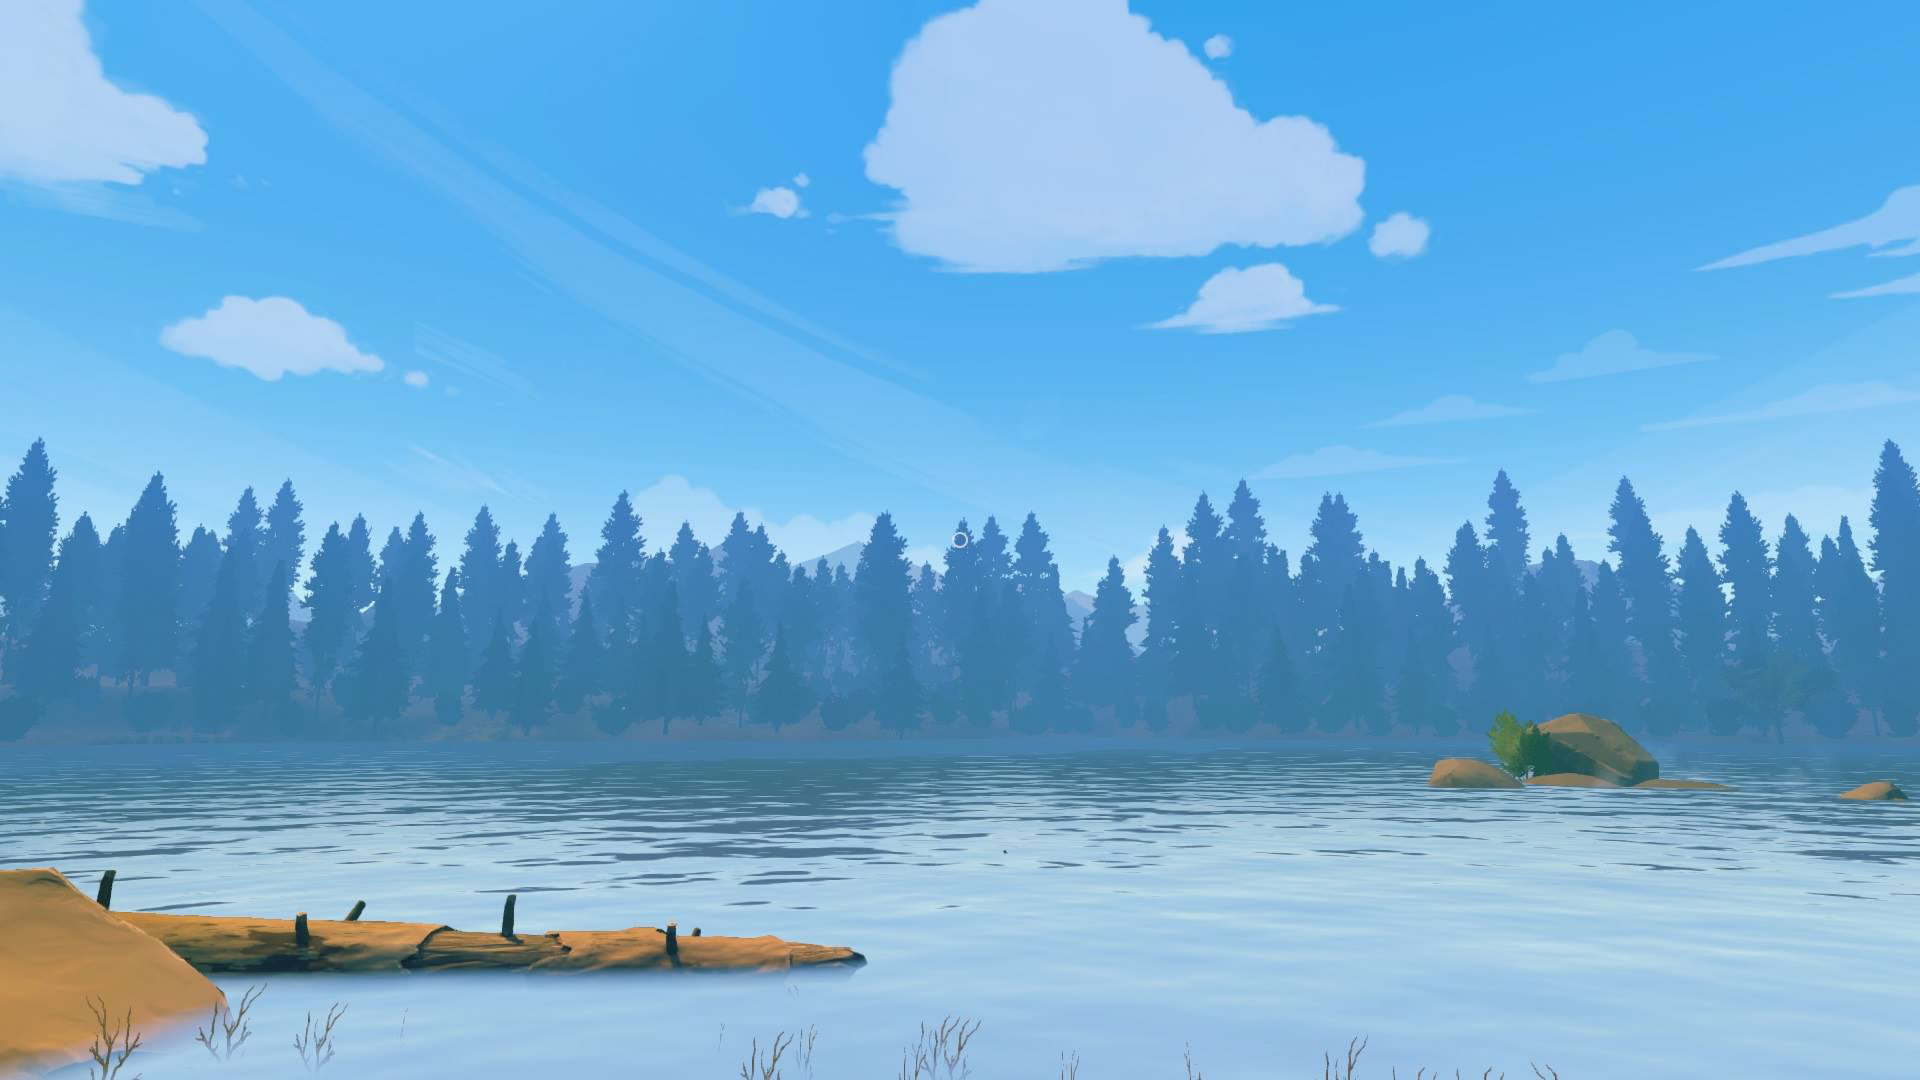 Firewatch, or how I dealt with being alone screenshot